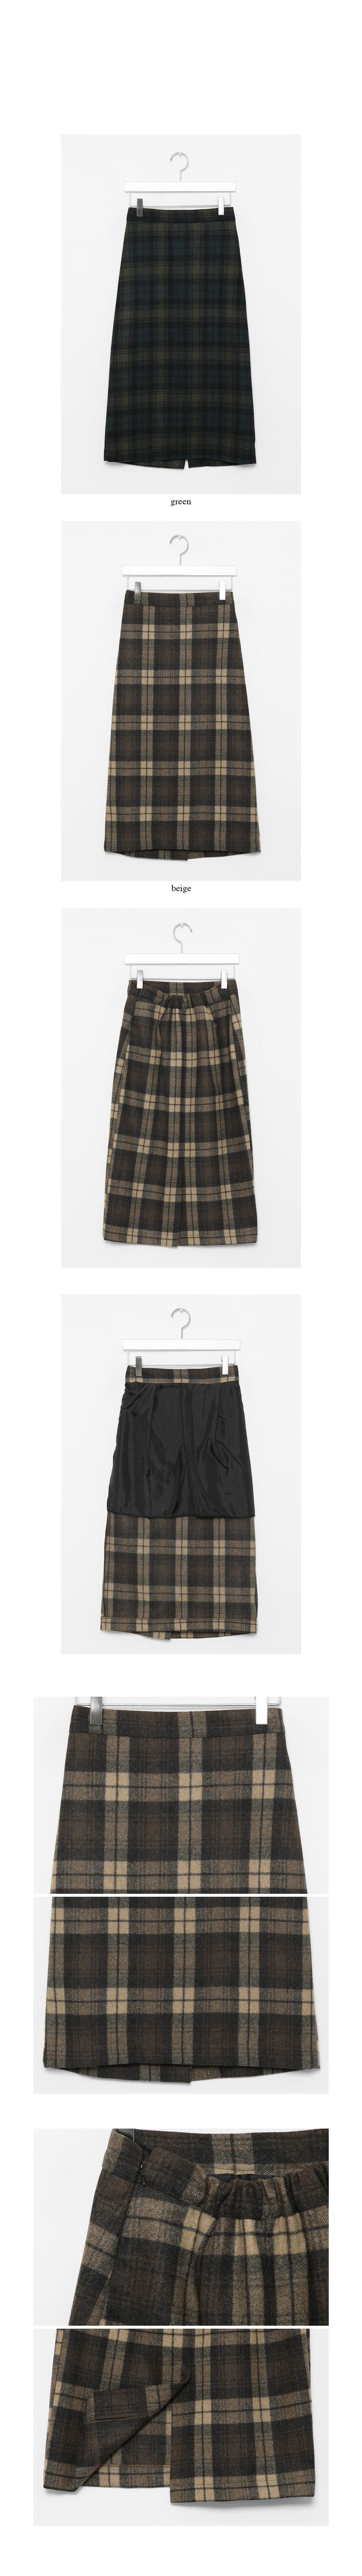 gradation check skirts